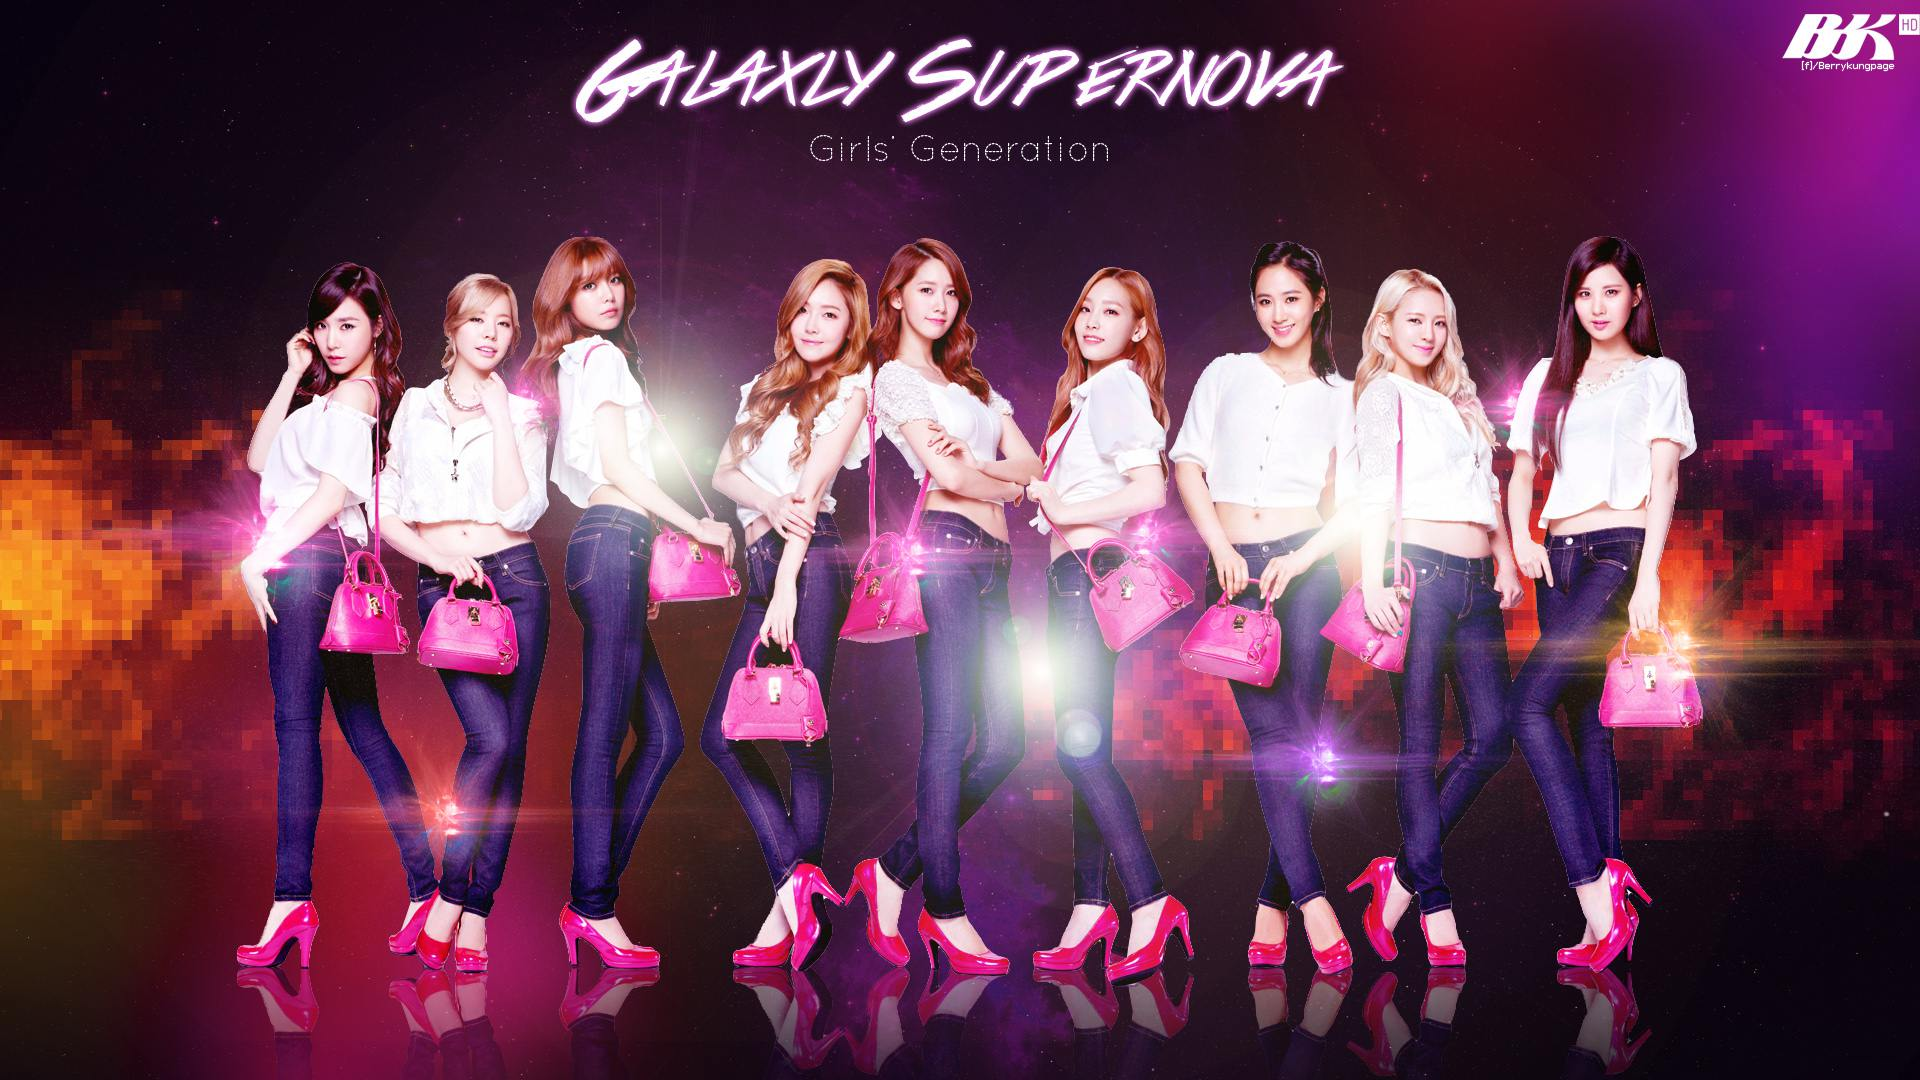 galaxy supernova snsd meme - photo #34